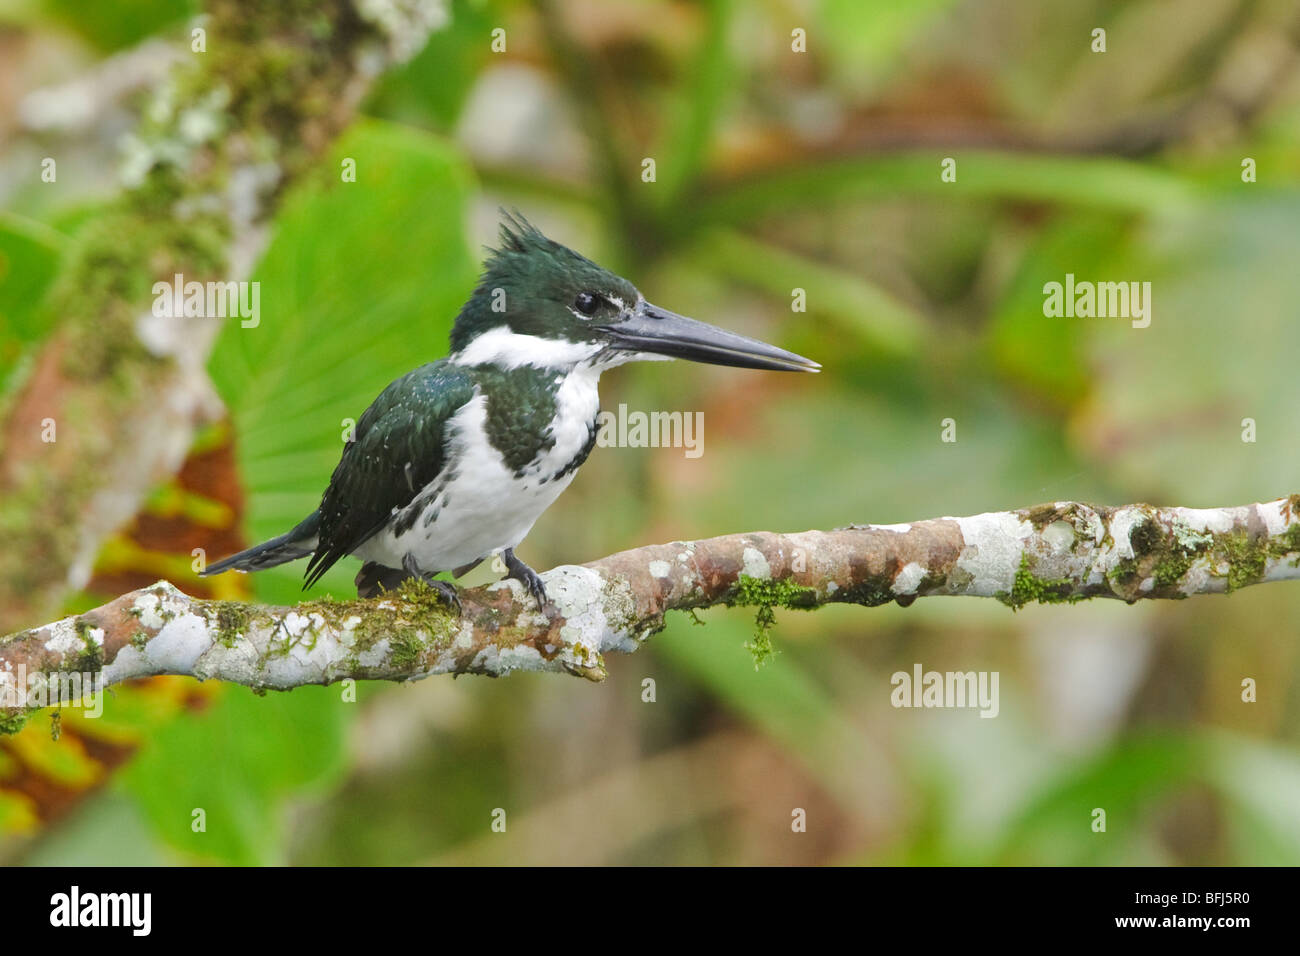 Amazon Kingfisher (Chloroceryle amazona) perched on a branch near the Napo River in Amazonian Ecuador. - Stock Image